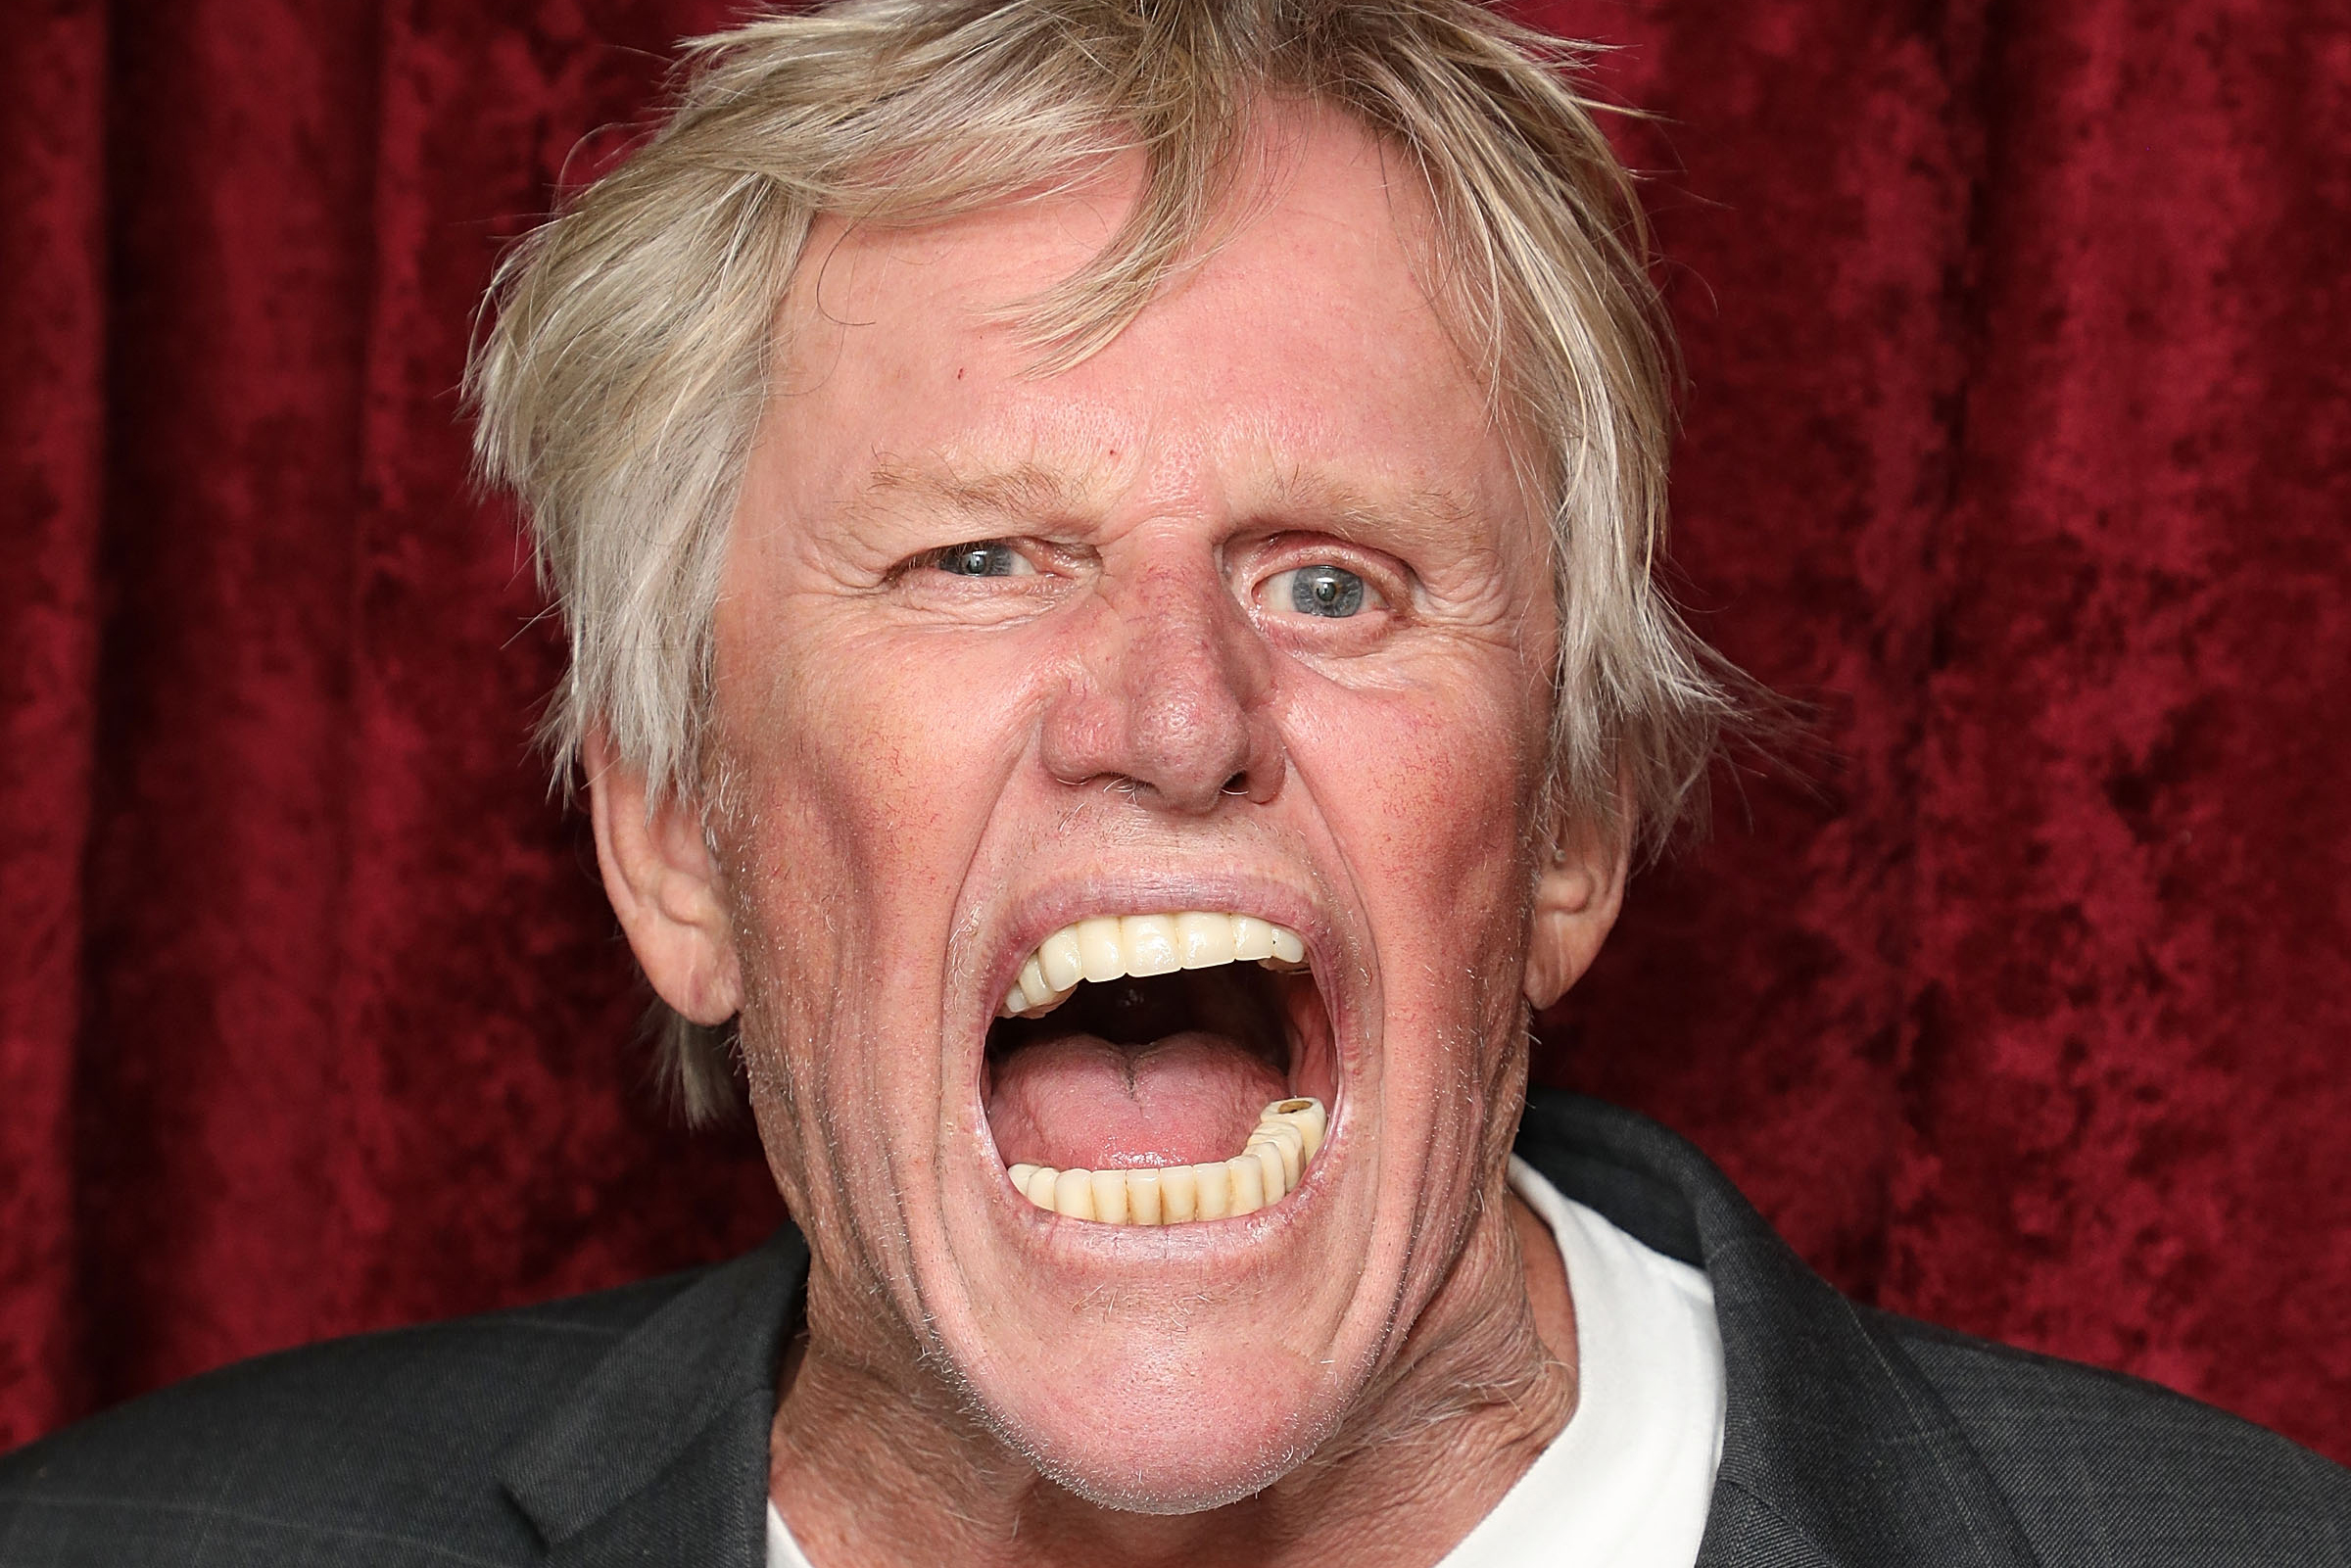 Gary Busey has an odd way of smiling for the camera and more star snaps |  Page Six